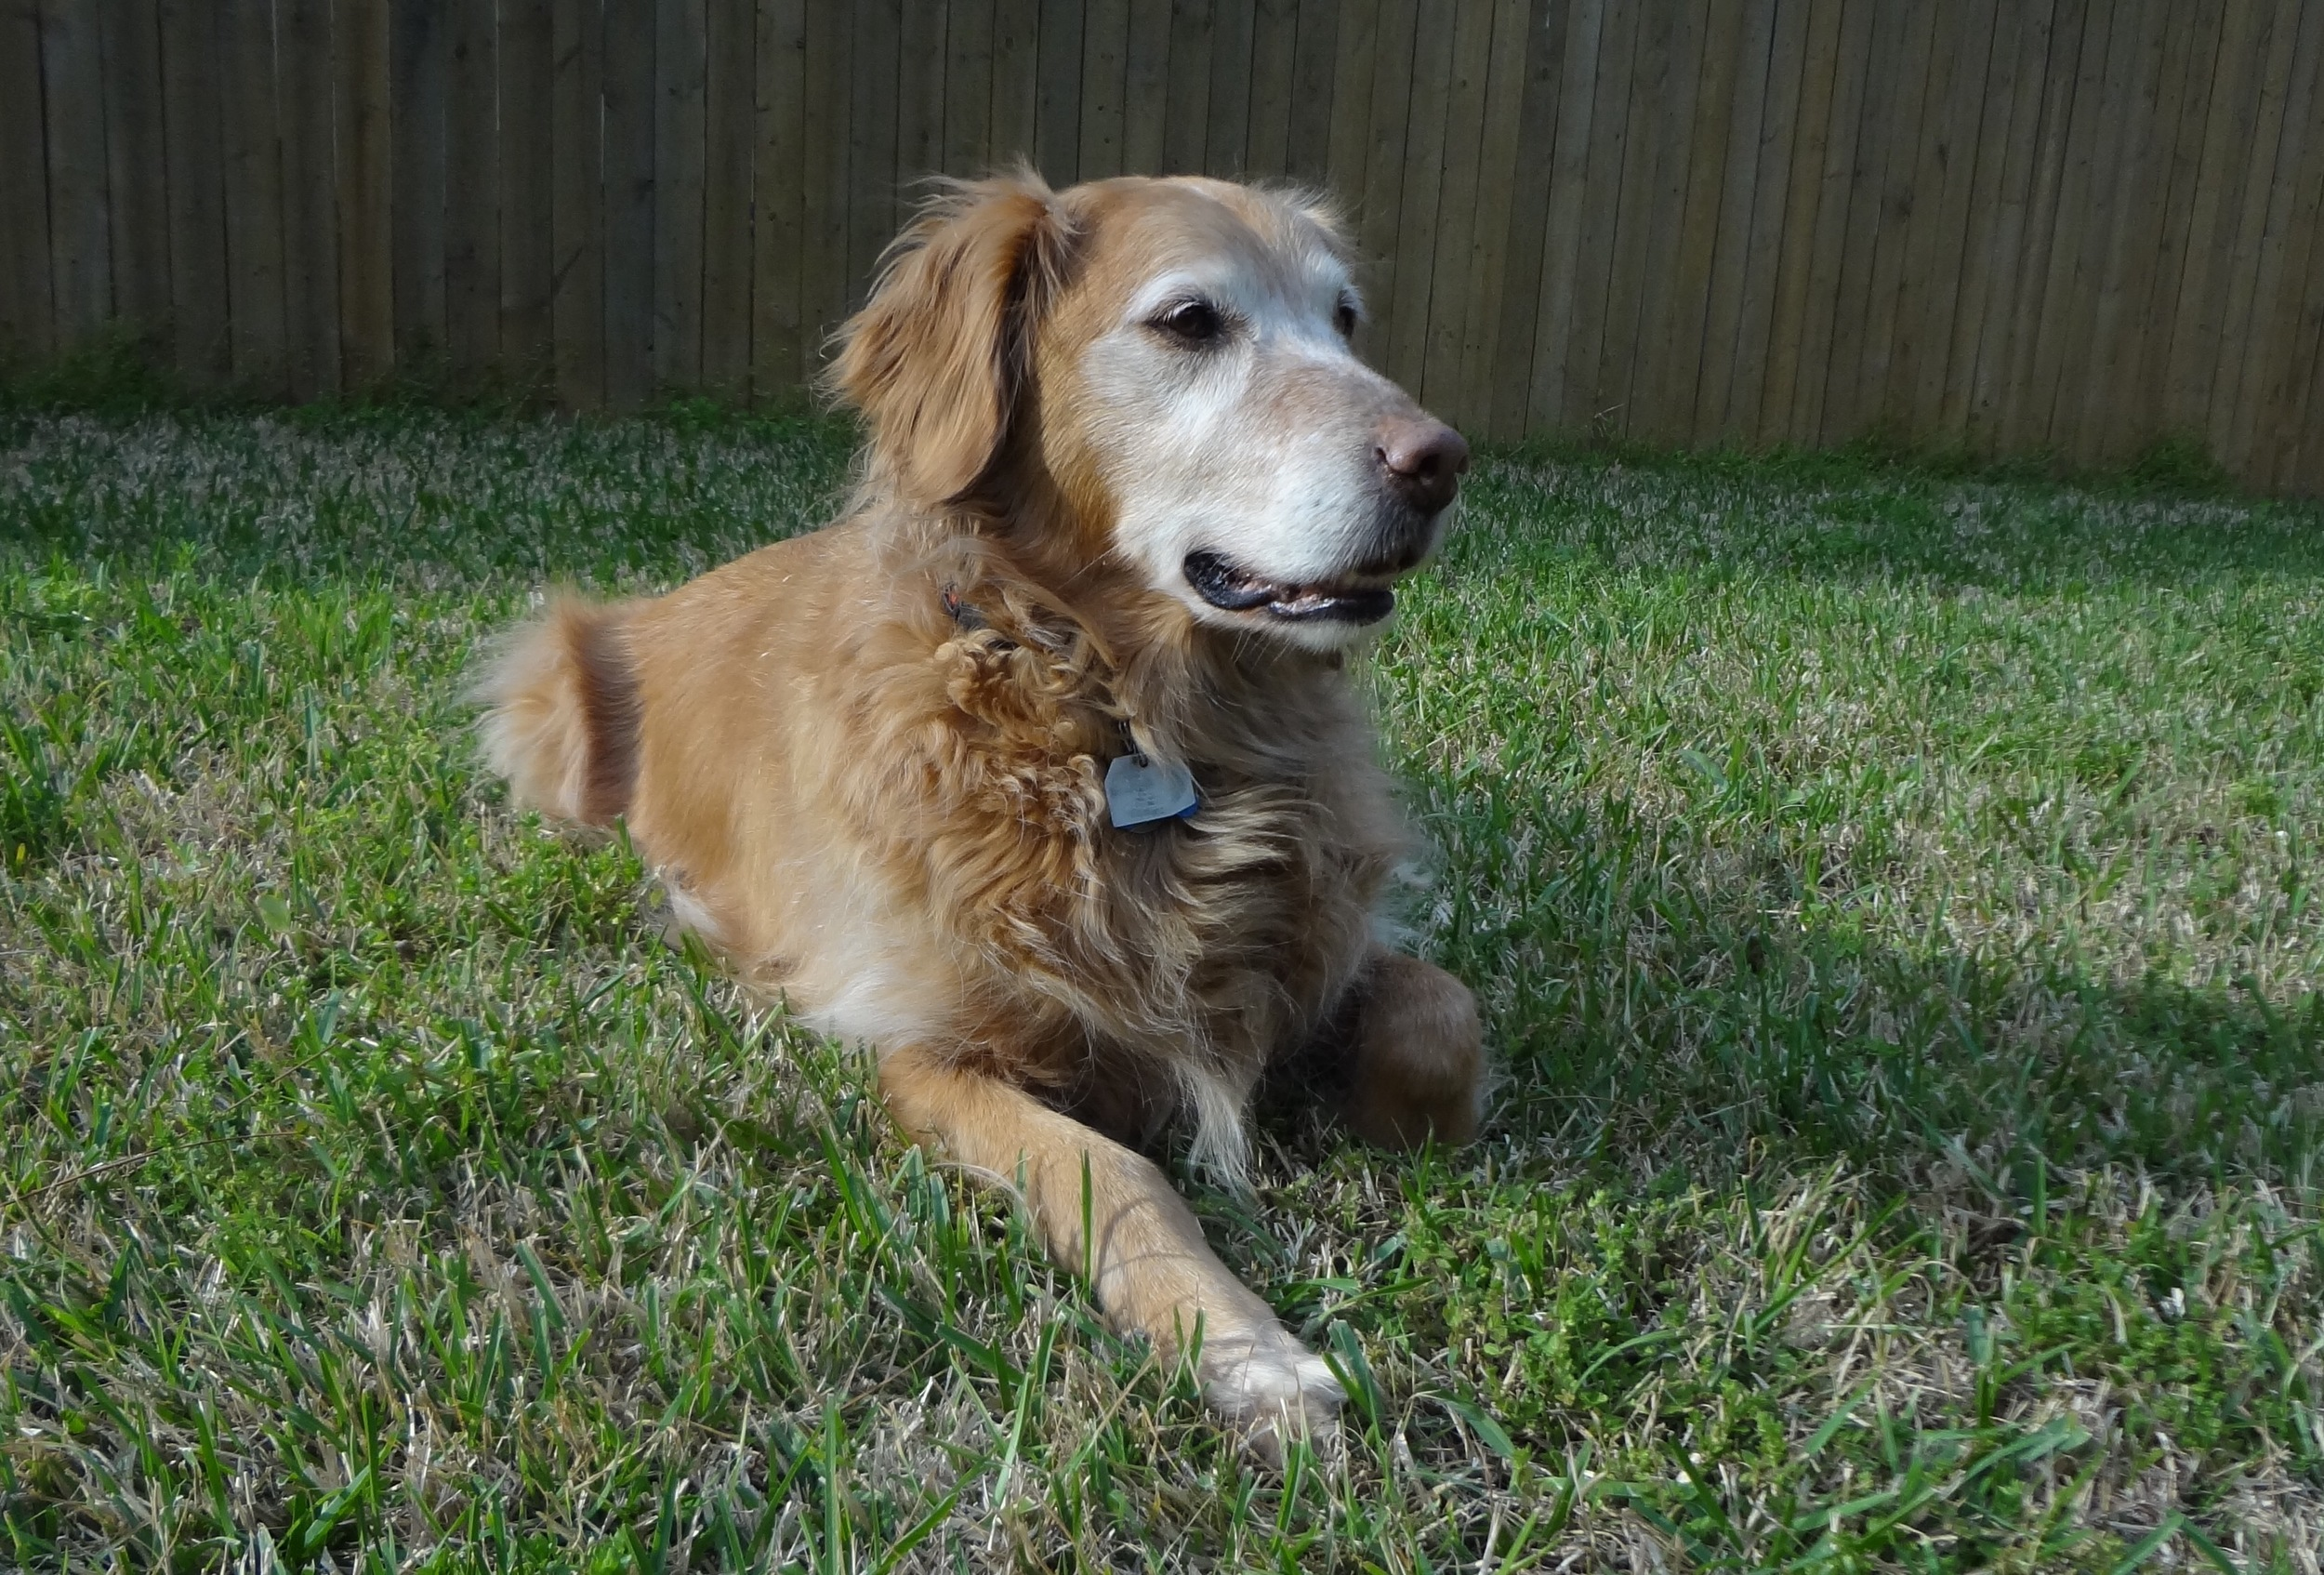 In memory of our wonderful Golden, Avery. We love and miss you every single day sweet boy.